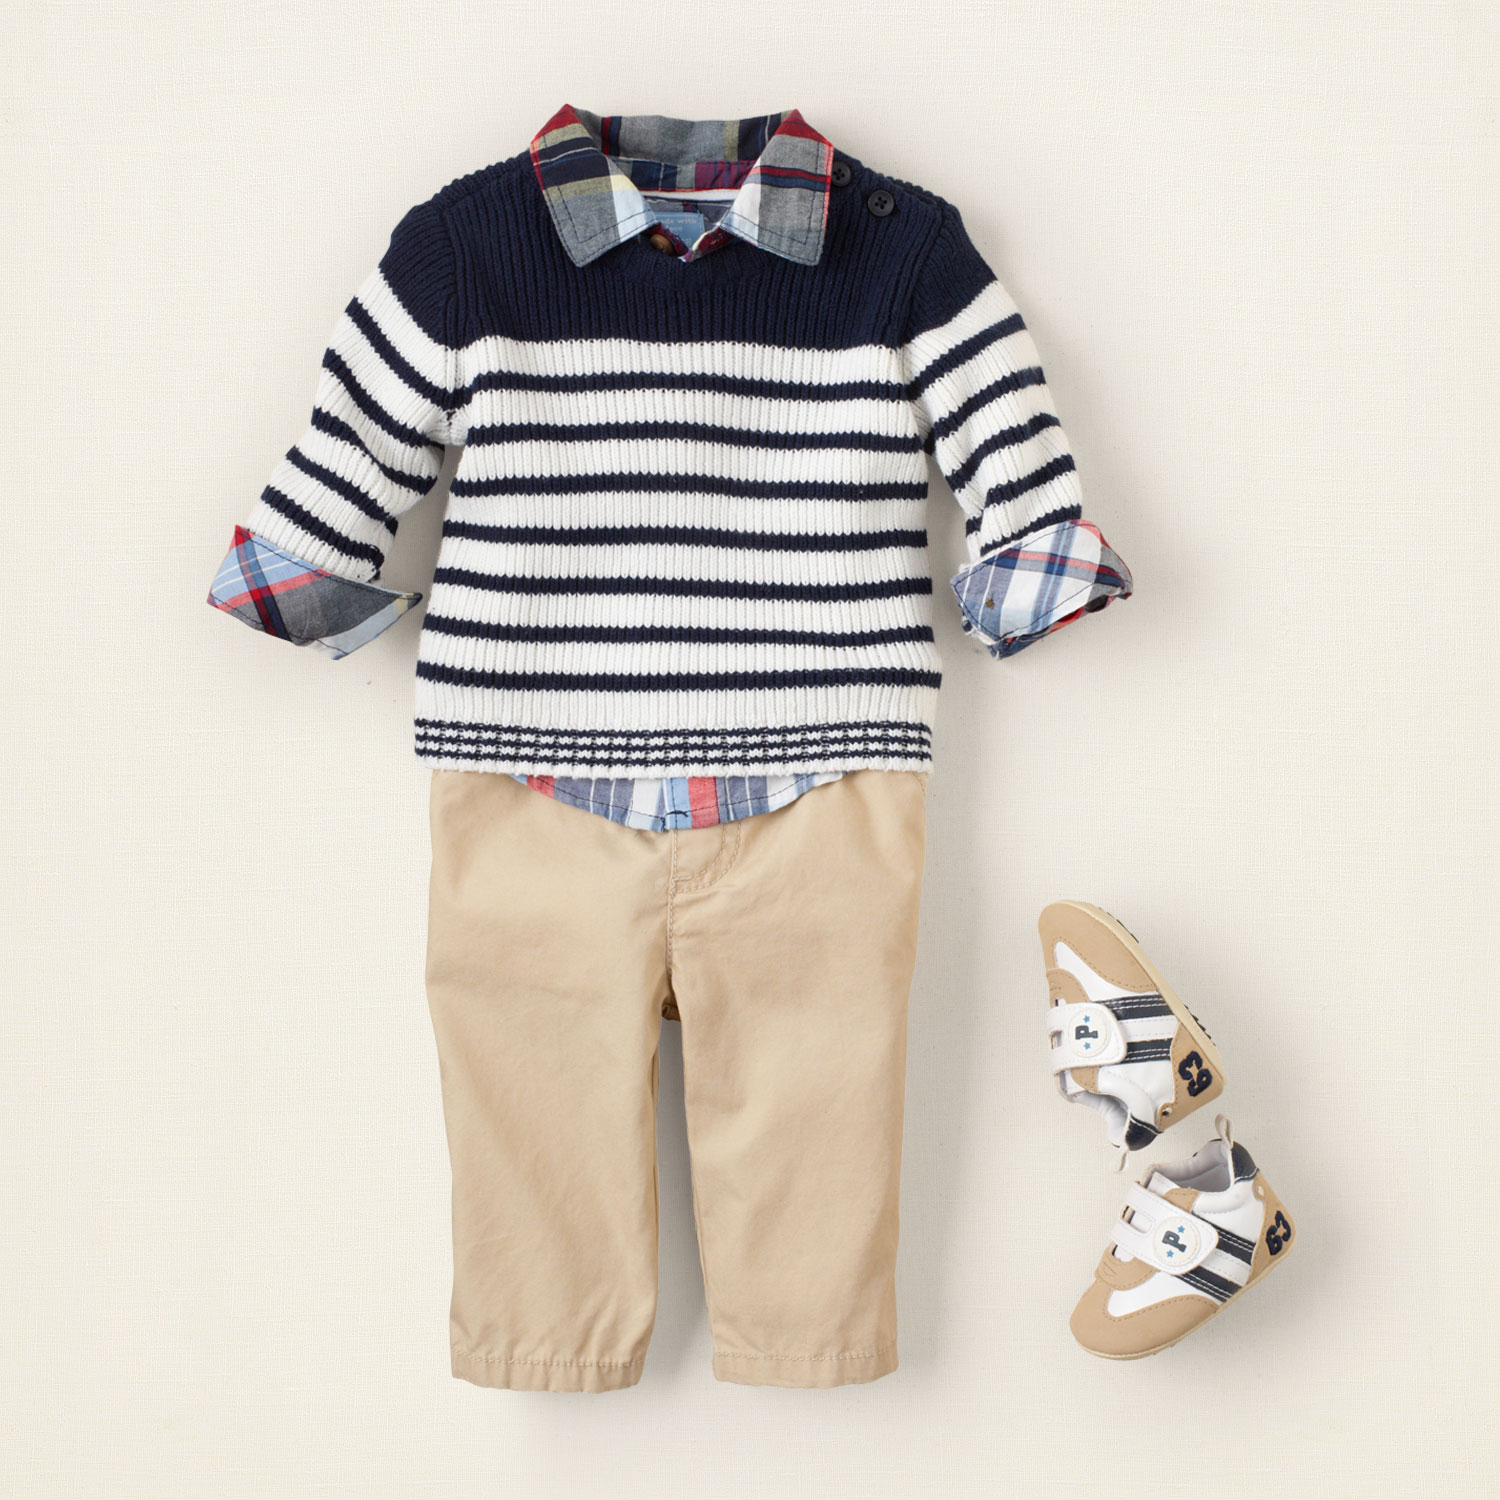 Baby Boys Navy Blue Amp White Cotton Sailor Bavy Clothes